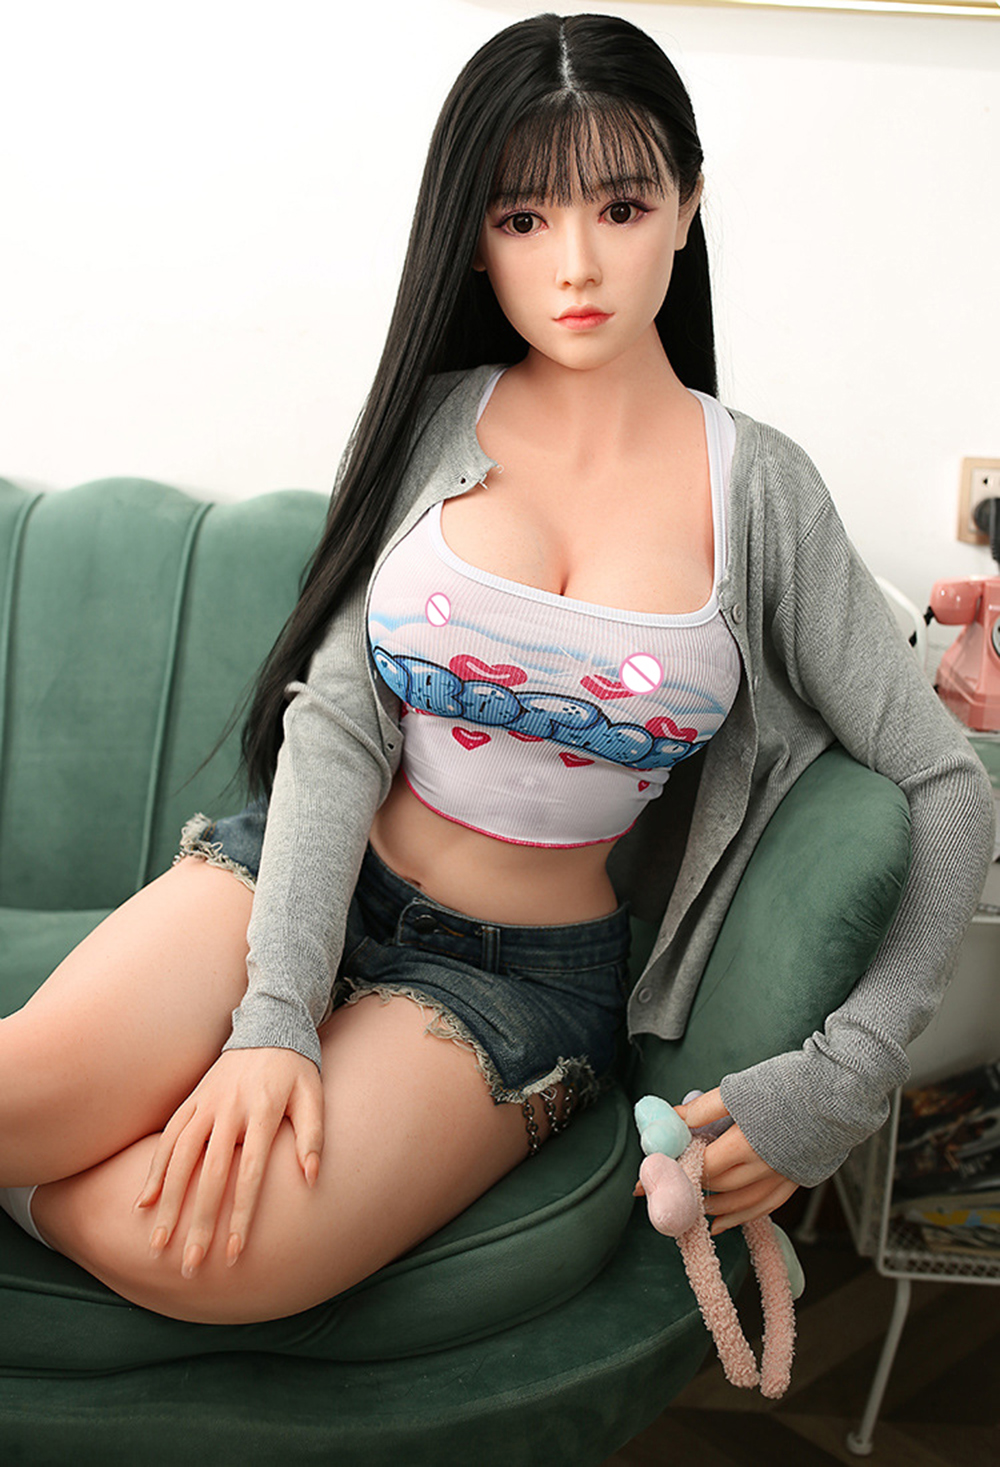 H02c40d510577491395a4ebfb225703a70 Sex-Doll Love Dolls For Men Masturbation Sexy-Doll Oral Ass Adult Sex Toys 158Cm Realistic Vagina Breast Anal TPE Silicone